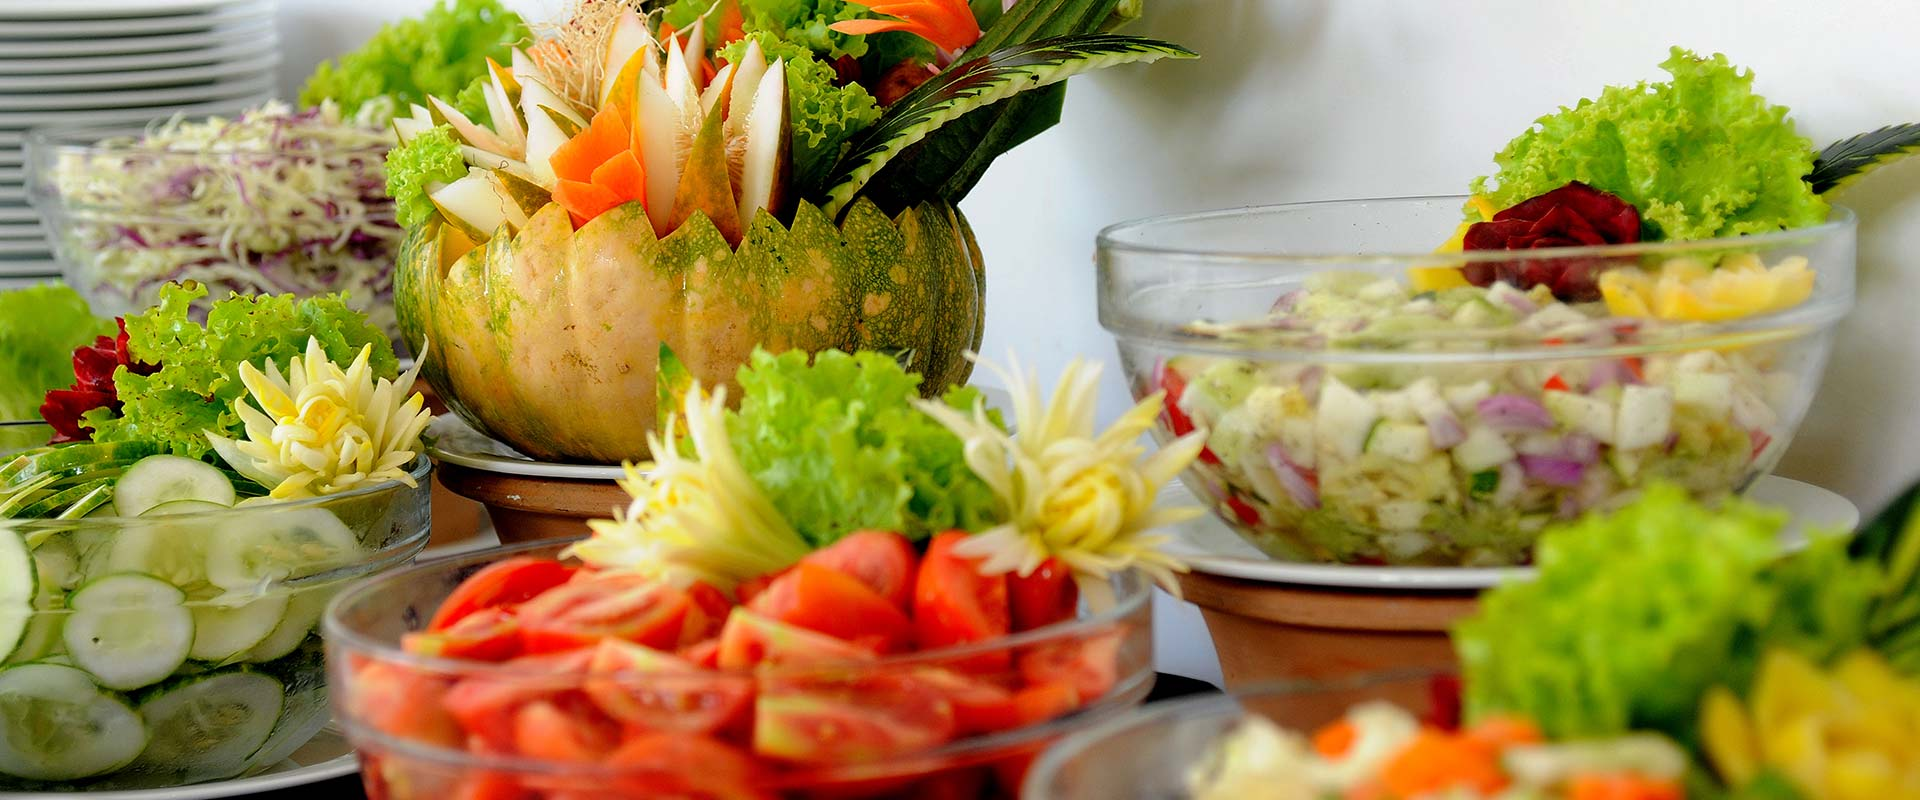 Vegetable Salads at Heritance Ayurveda